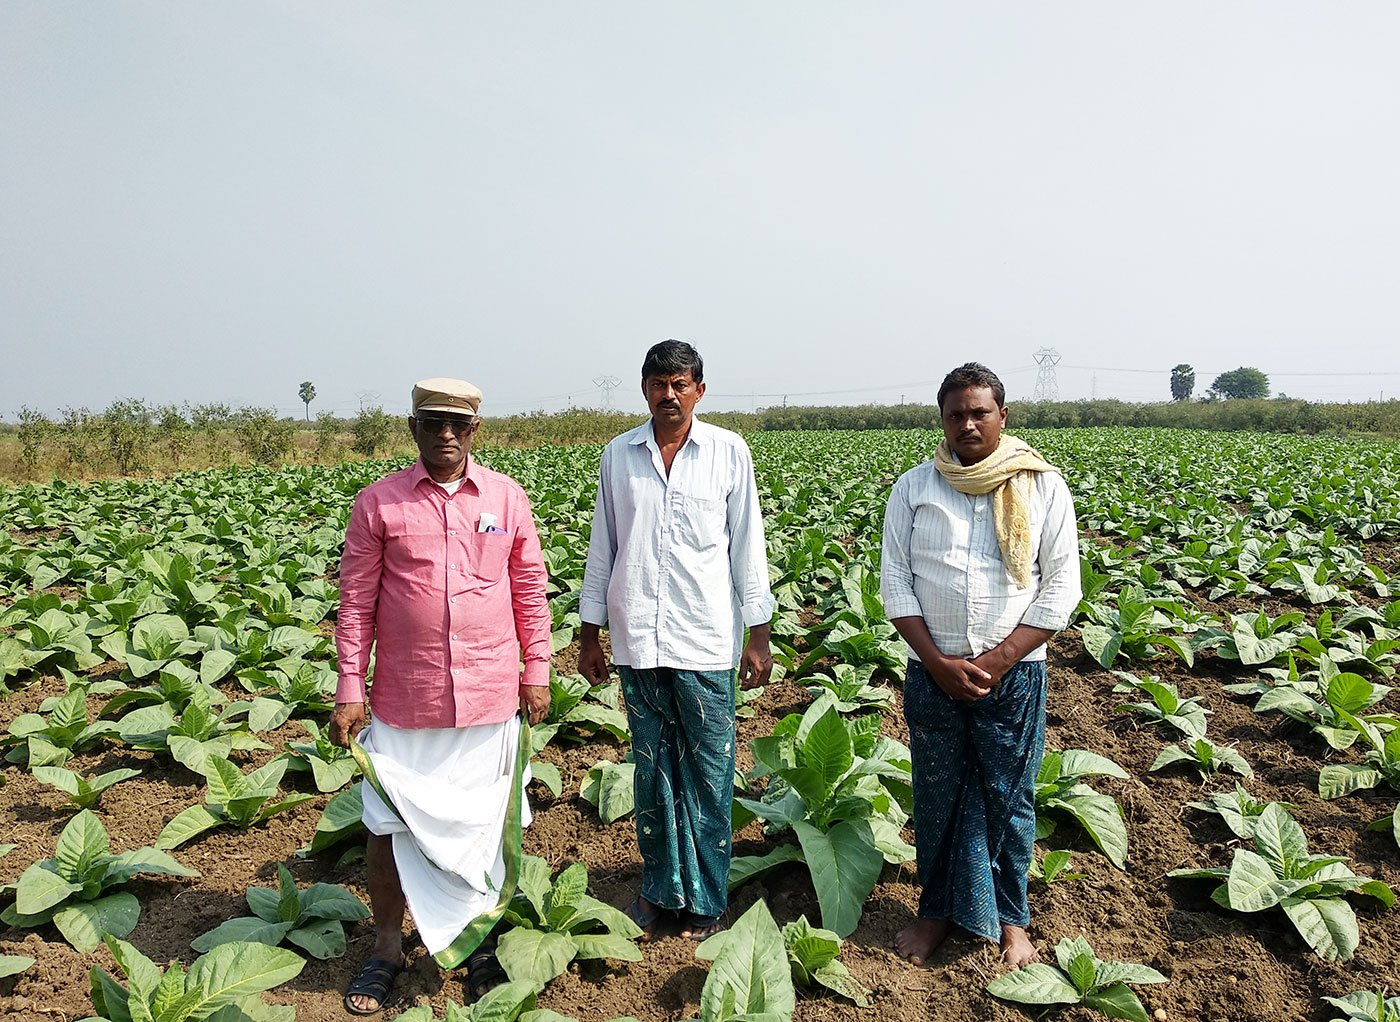 Tobacco farmers in their field